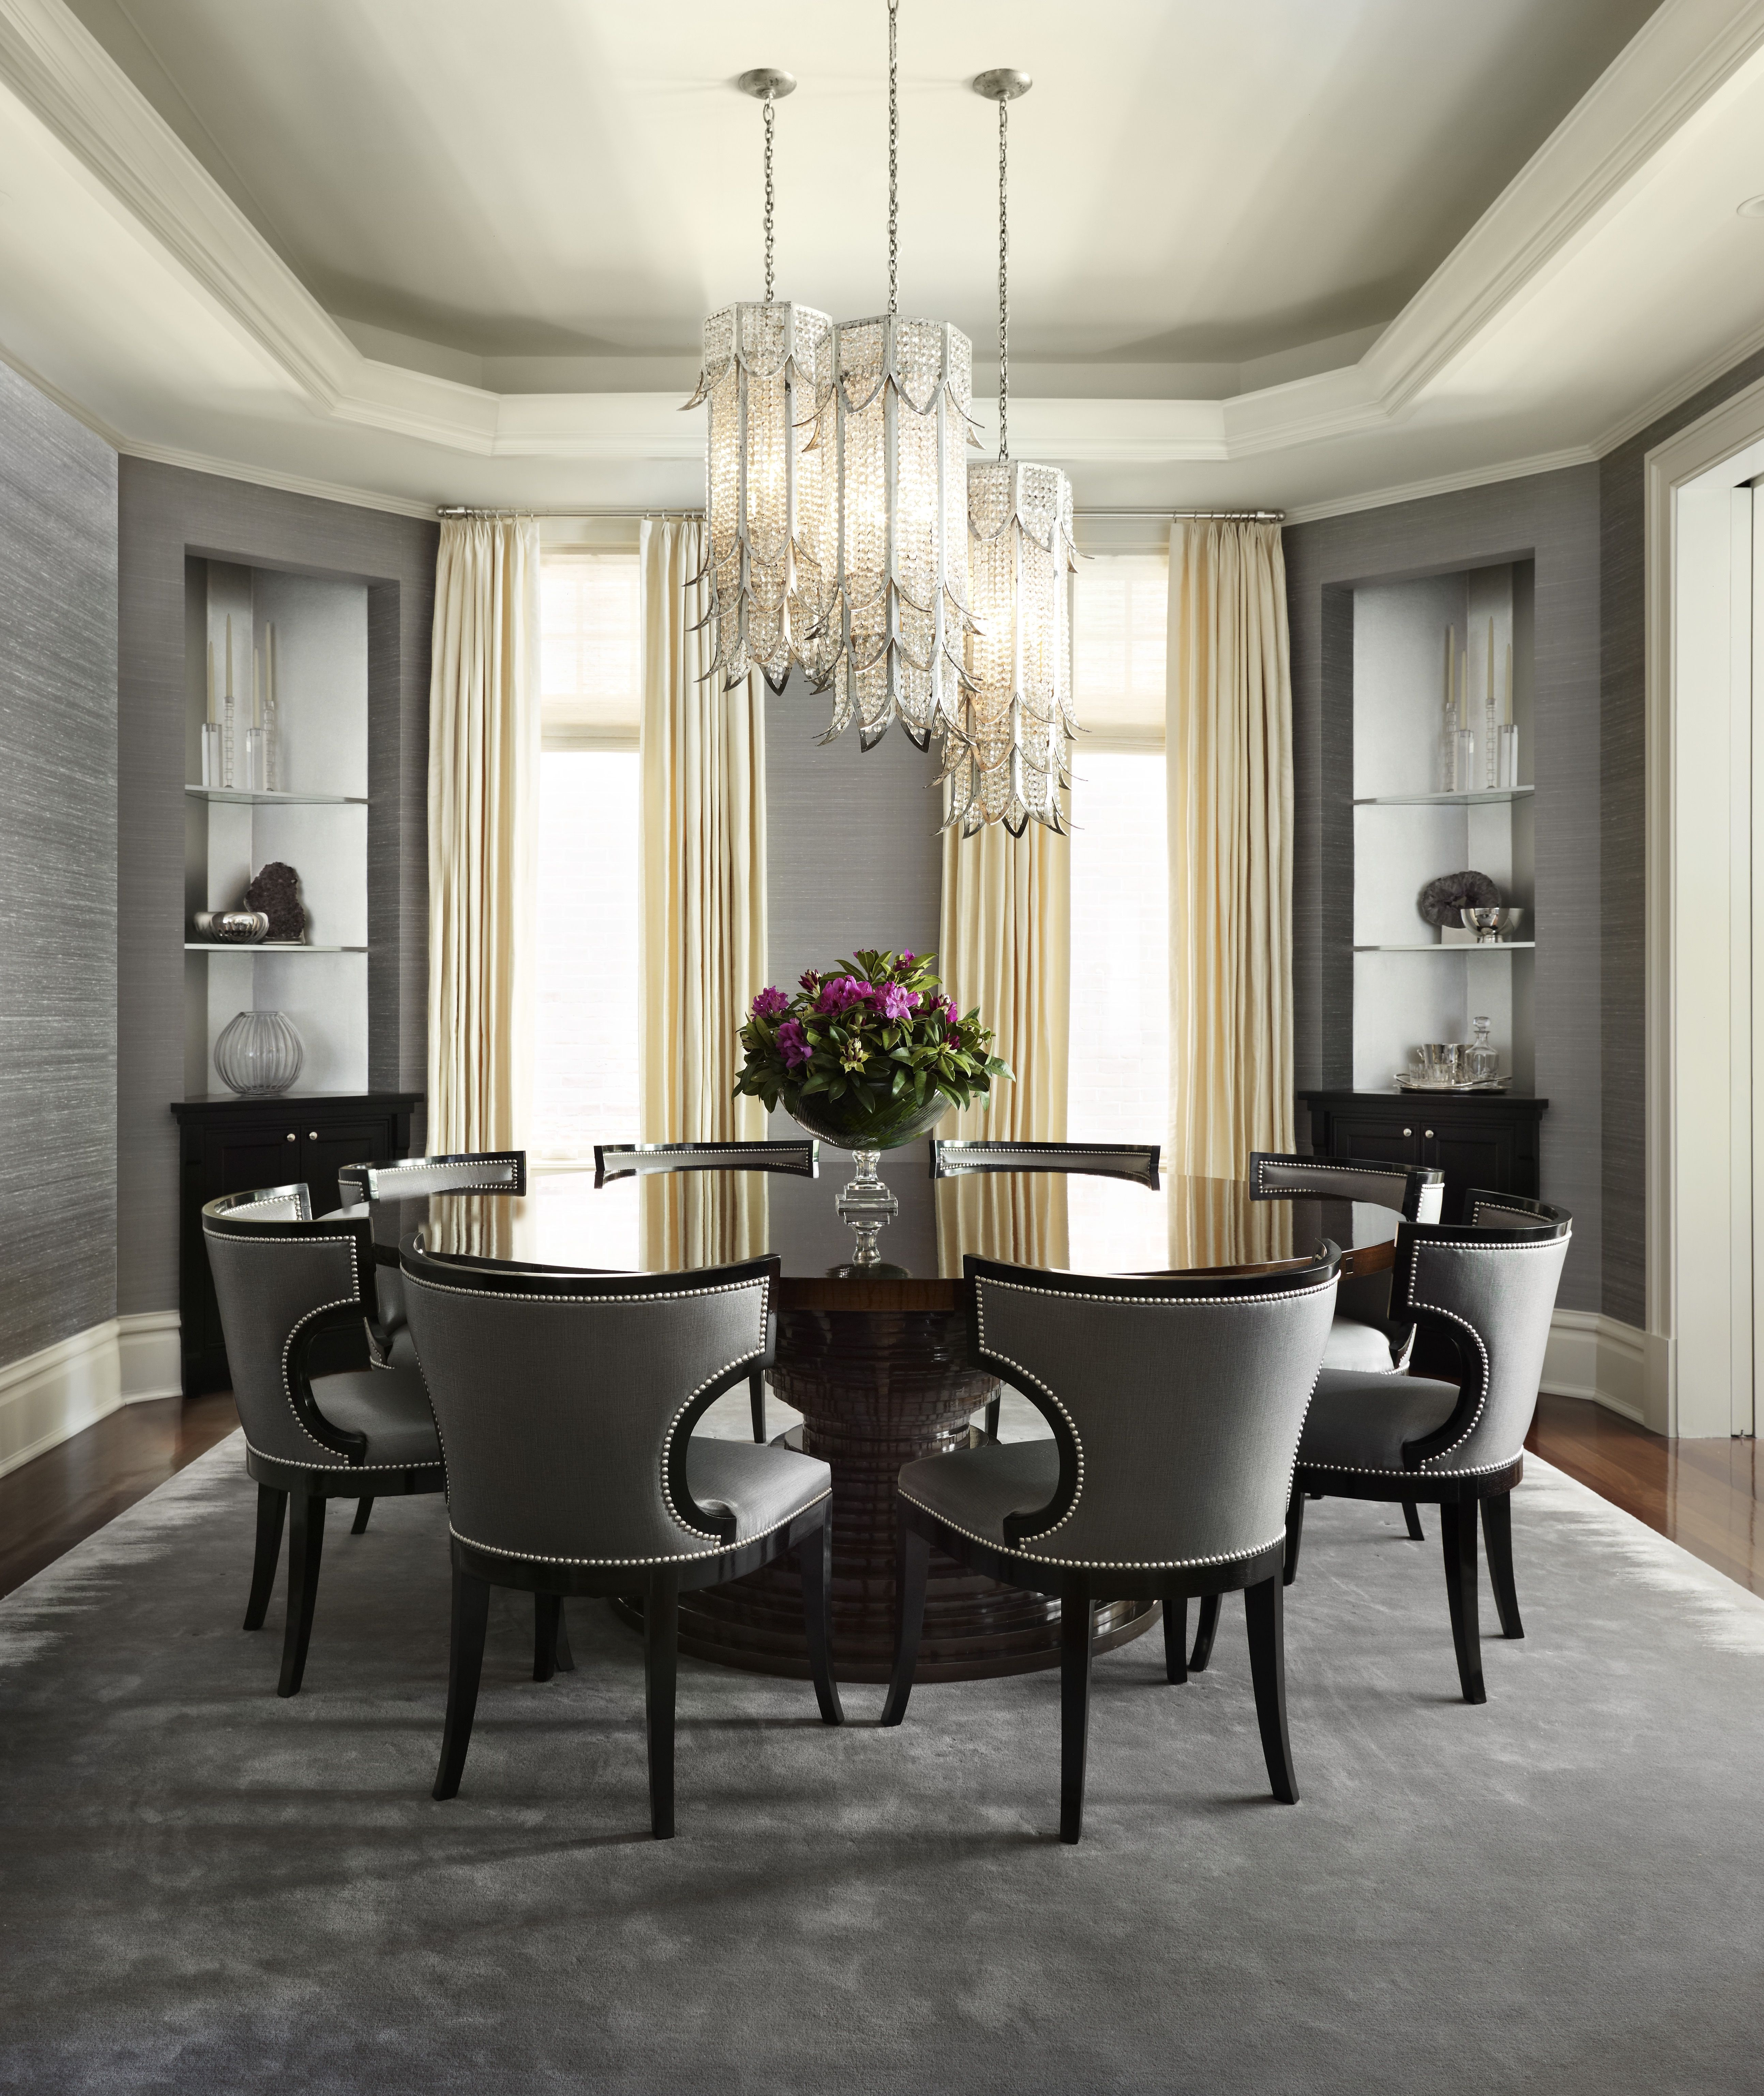 Our 50 Most Popular Design Images Of The Year Elegant Dining